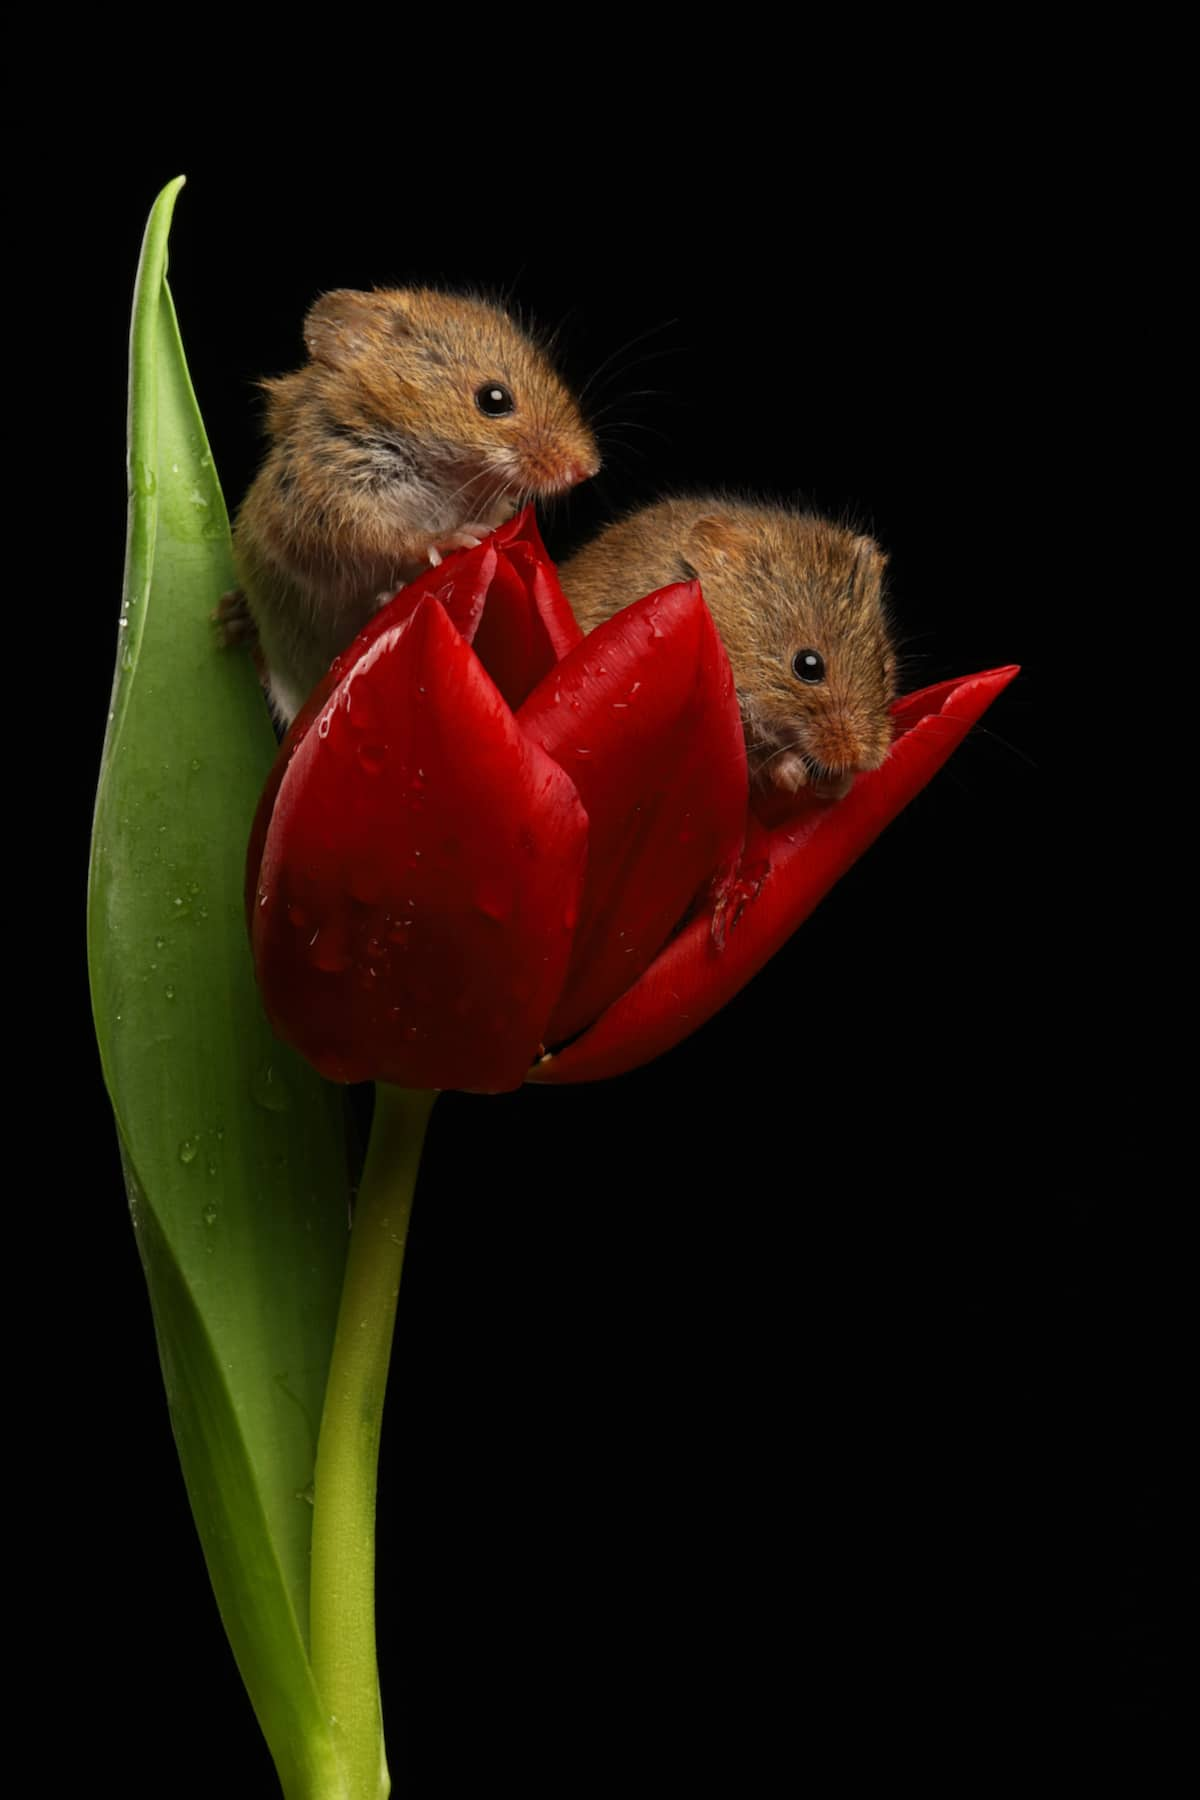 Two Harvest Mice Inside a Tulip